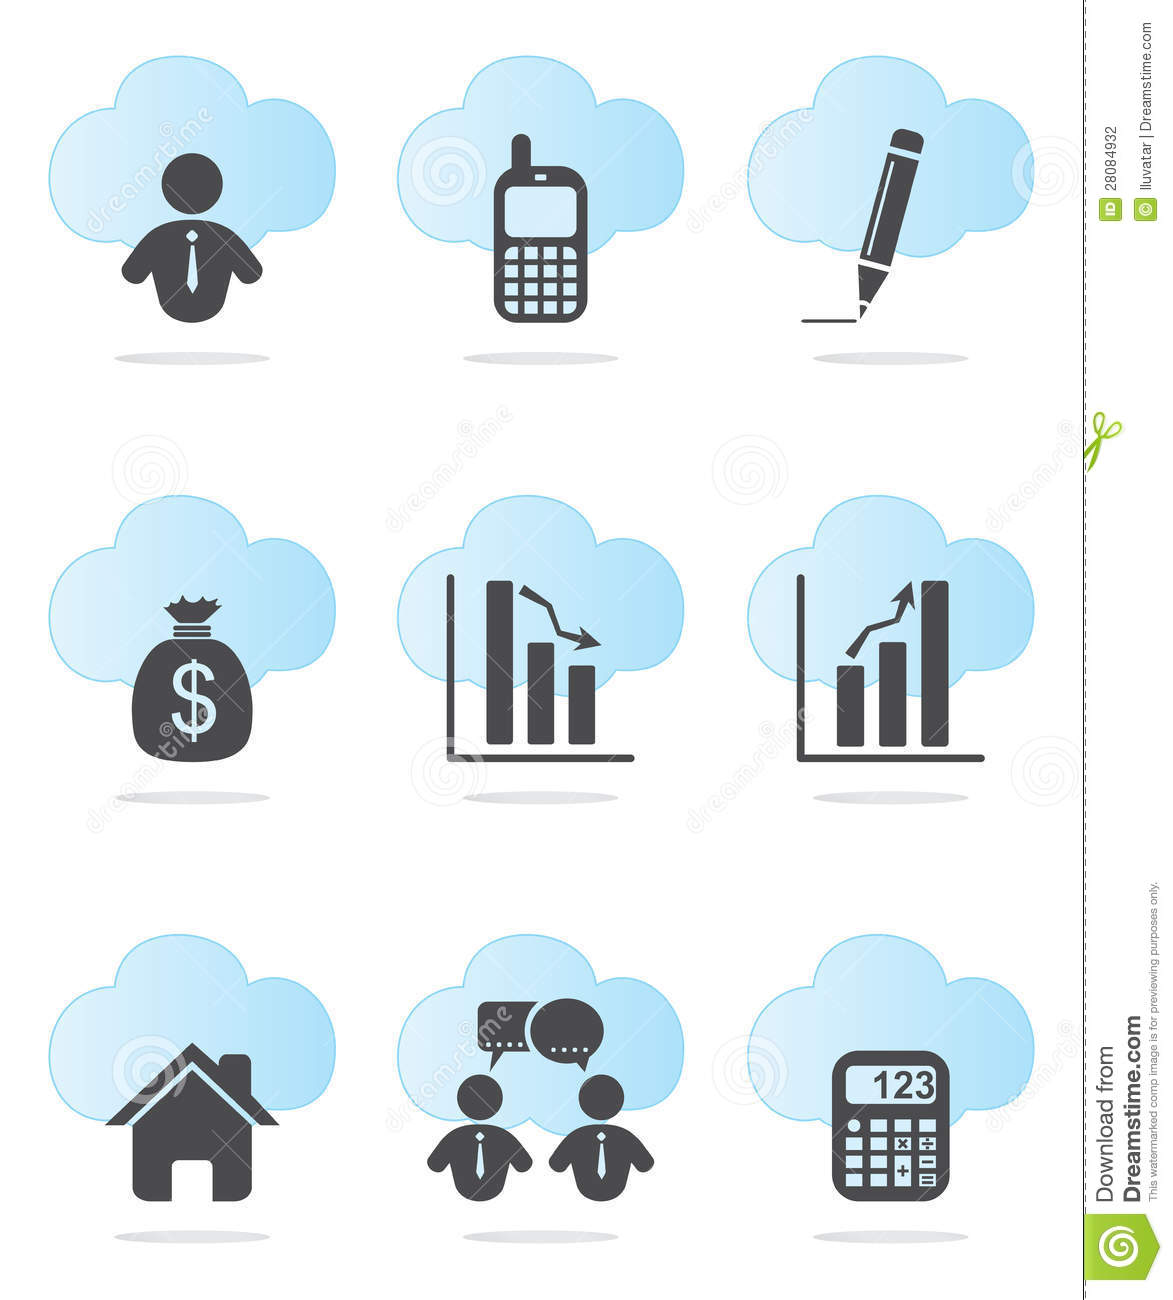 Business Finance: Business And Finance Icons Stock Photography